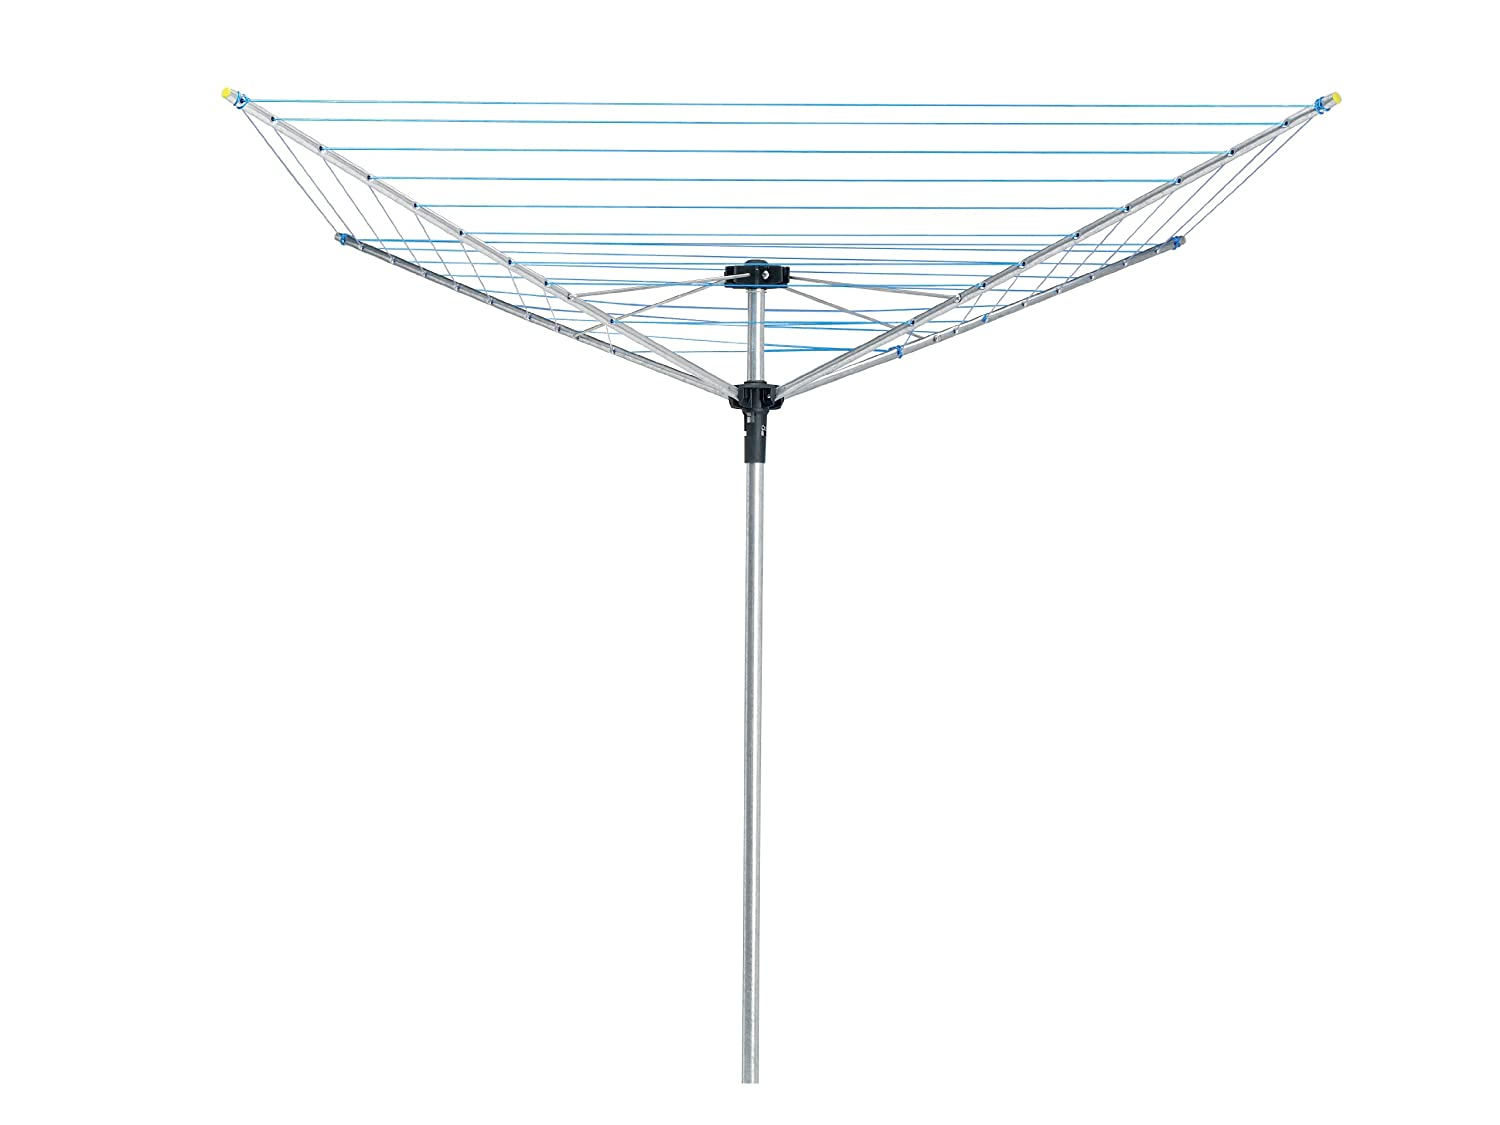 40 meter Hills 115551 Airdry Rotary Dryer 4 Arm